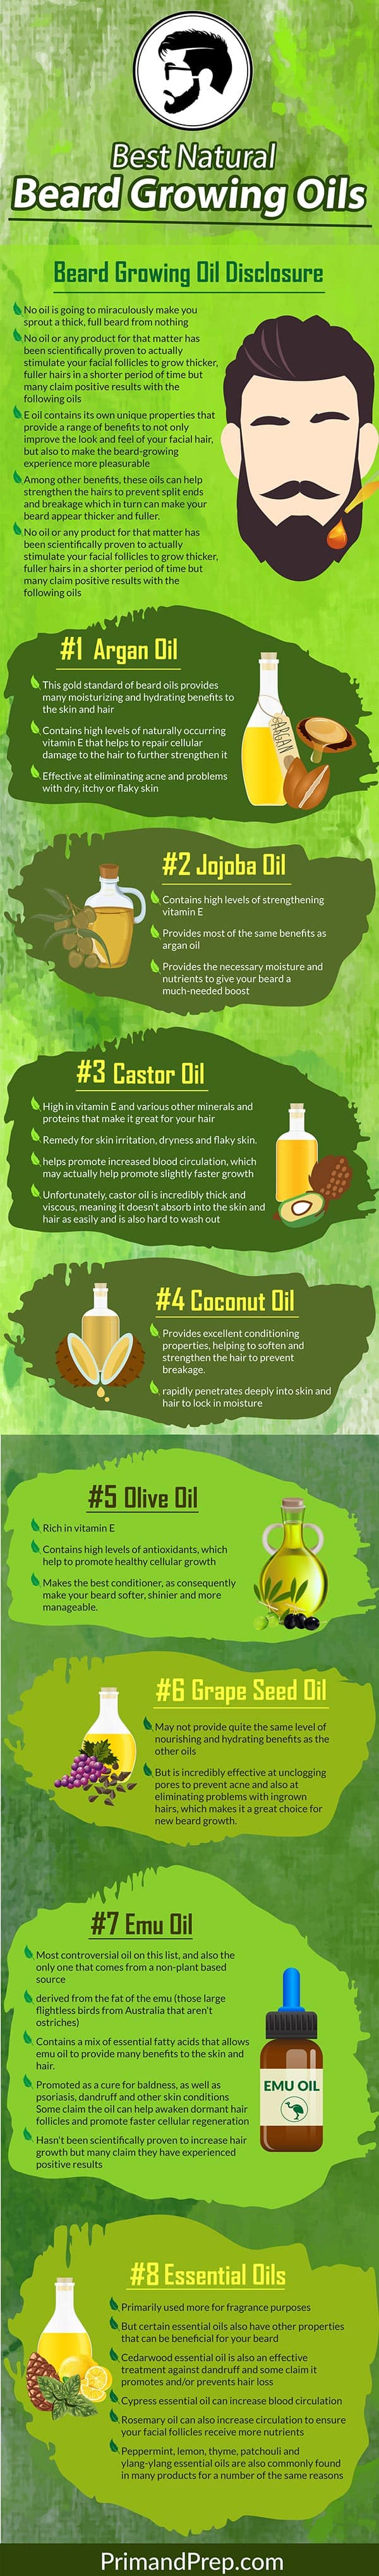 Best Beard Growing Oil Infographic